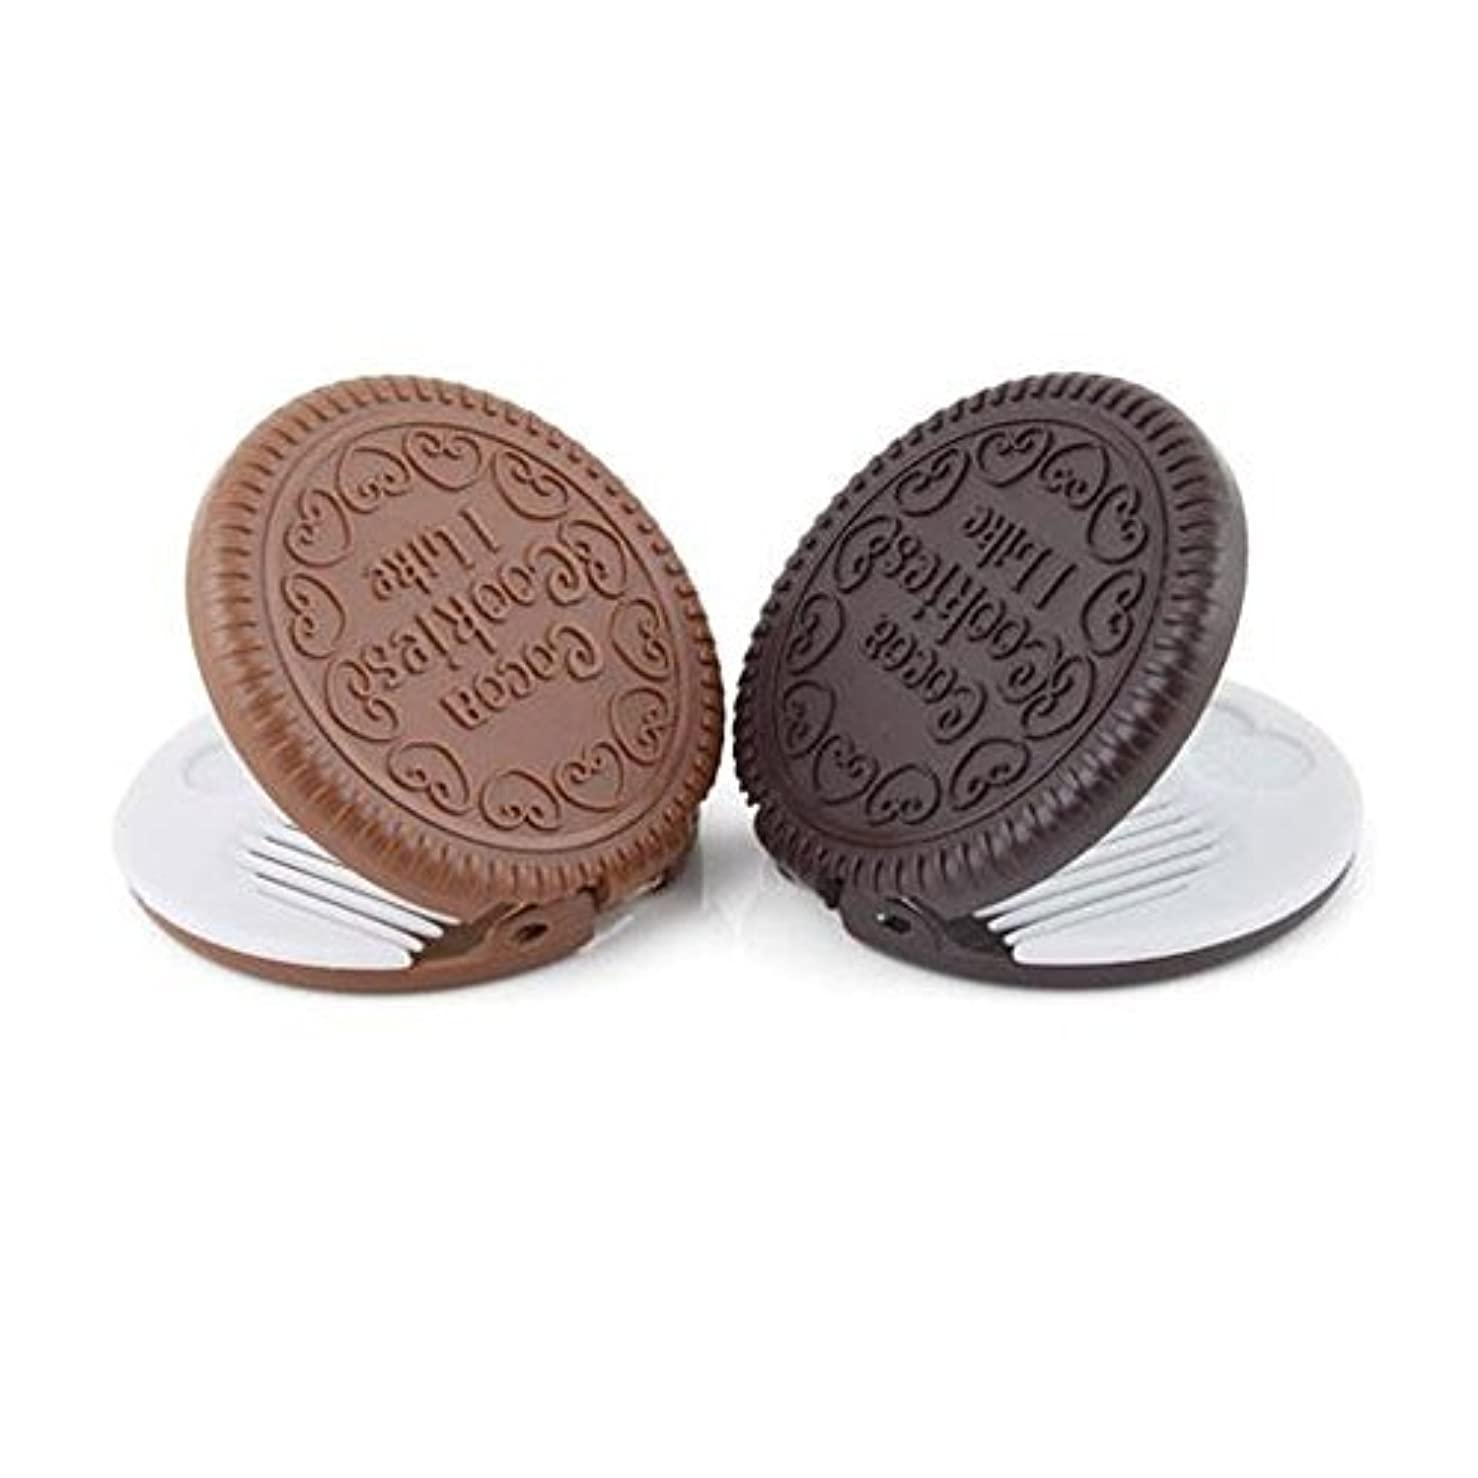 差し迫った報いる通信網yueton Pack of 2 Mini Pocket Chocolate Cookie Compact Mirror with Comb [並行輸入品]